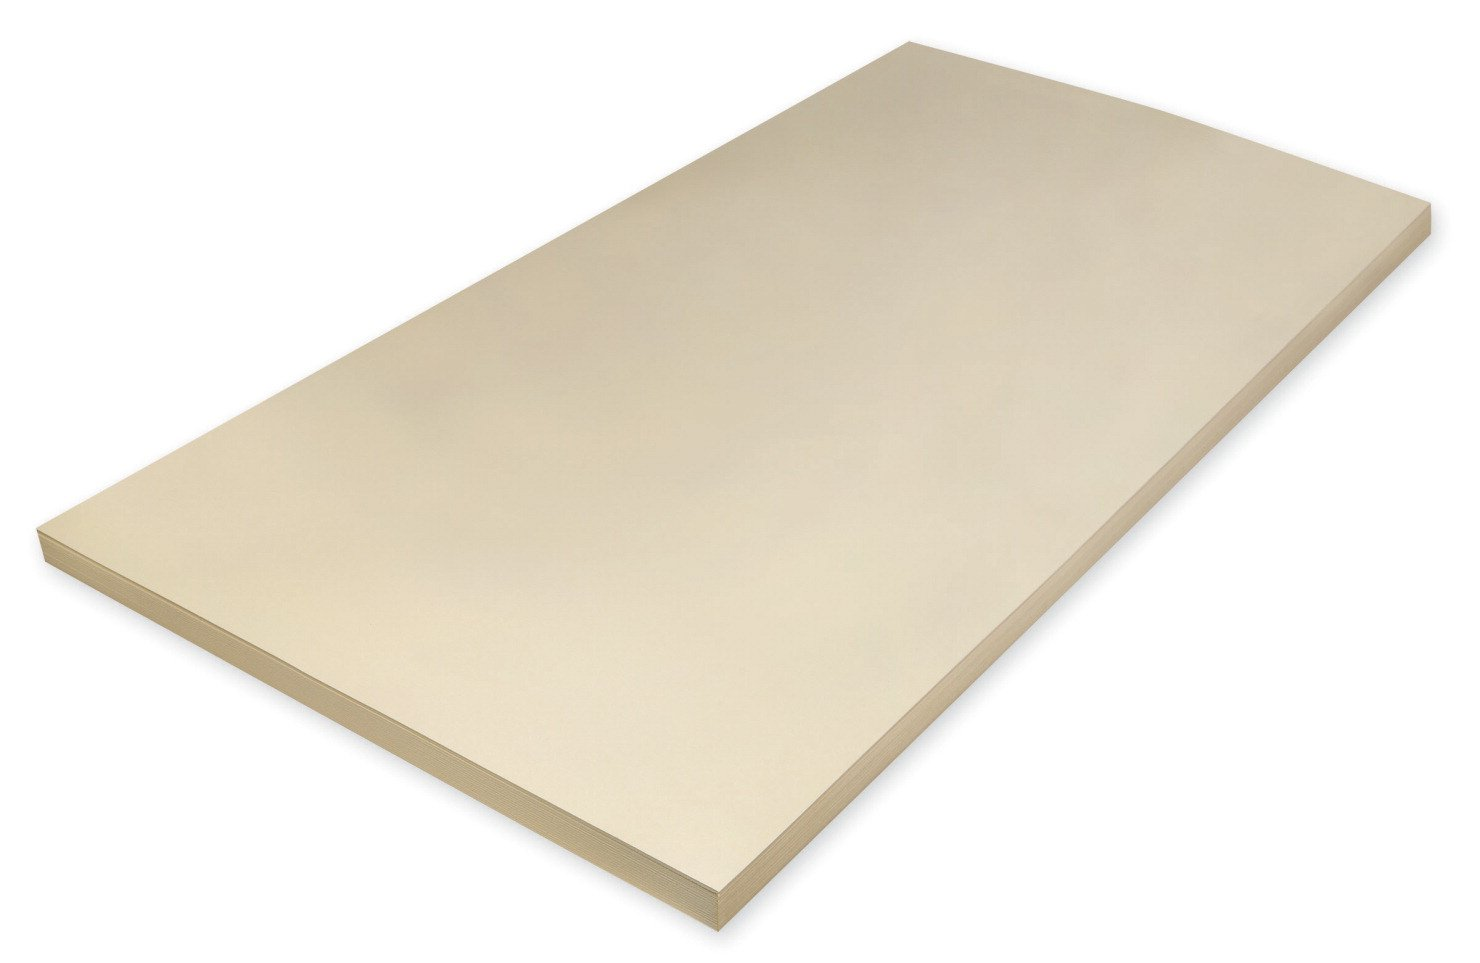 Pacon Super Heavyweight Tagboard, 24 x 36 in, Manila, Pack of 100